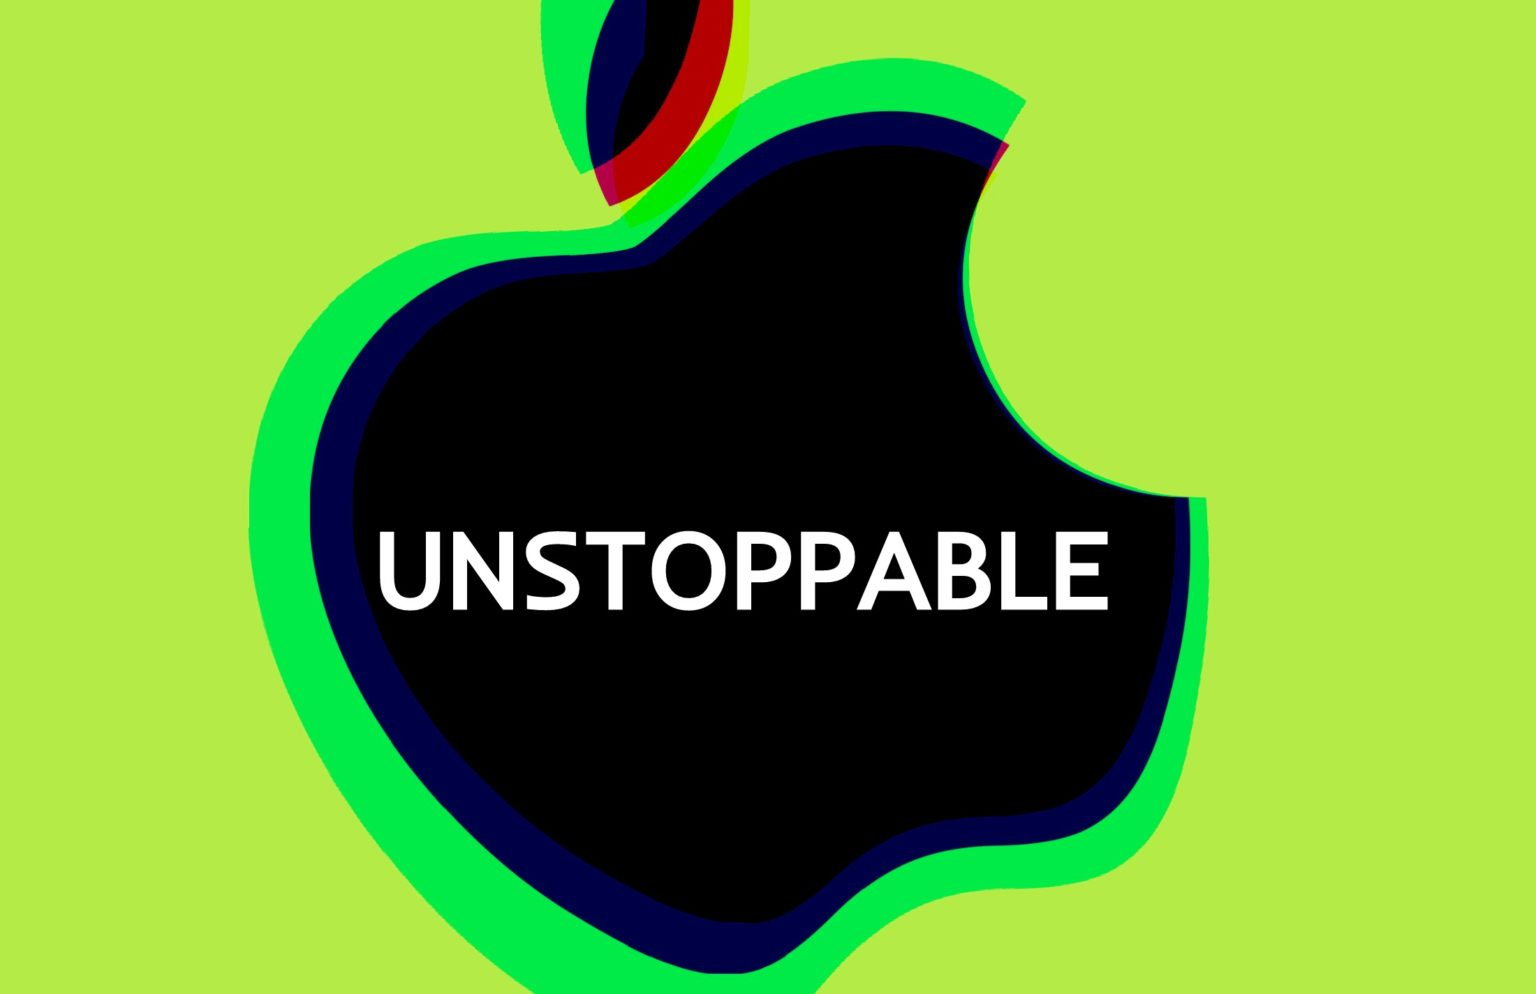 Apple Q2 2020 earnings call: Apple still looks unstoppable.